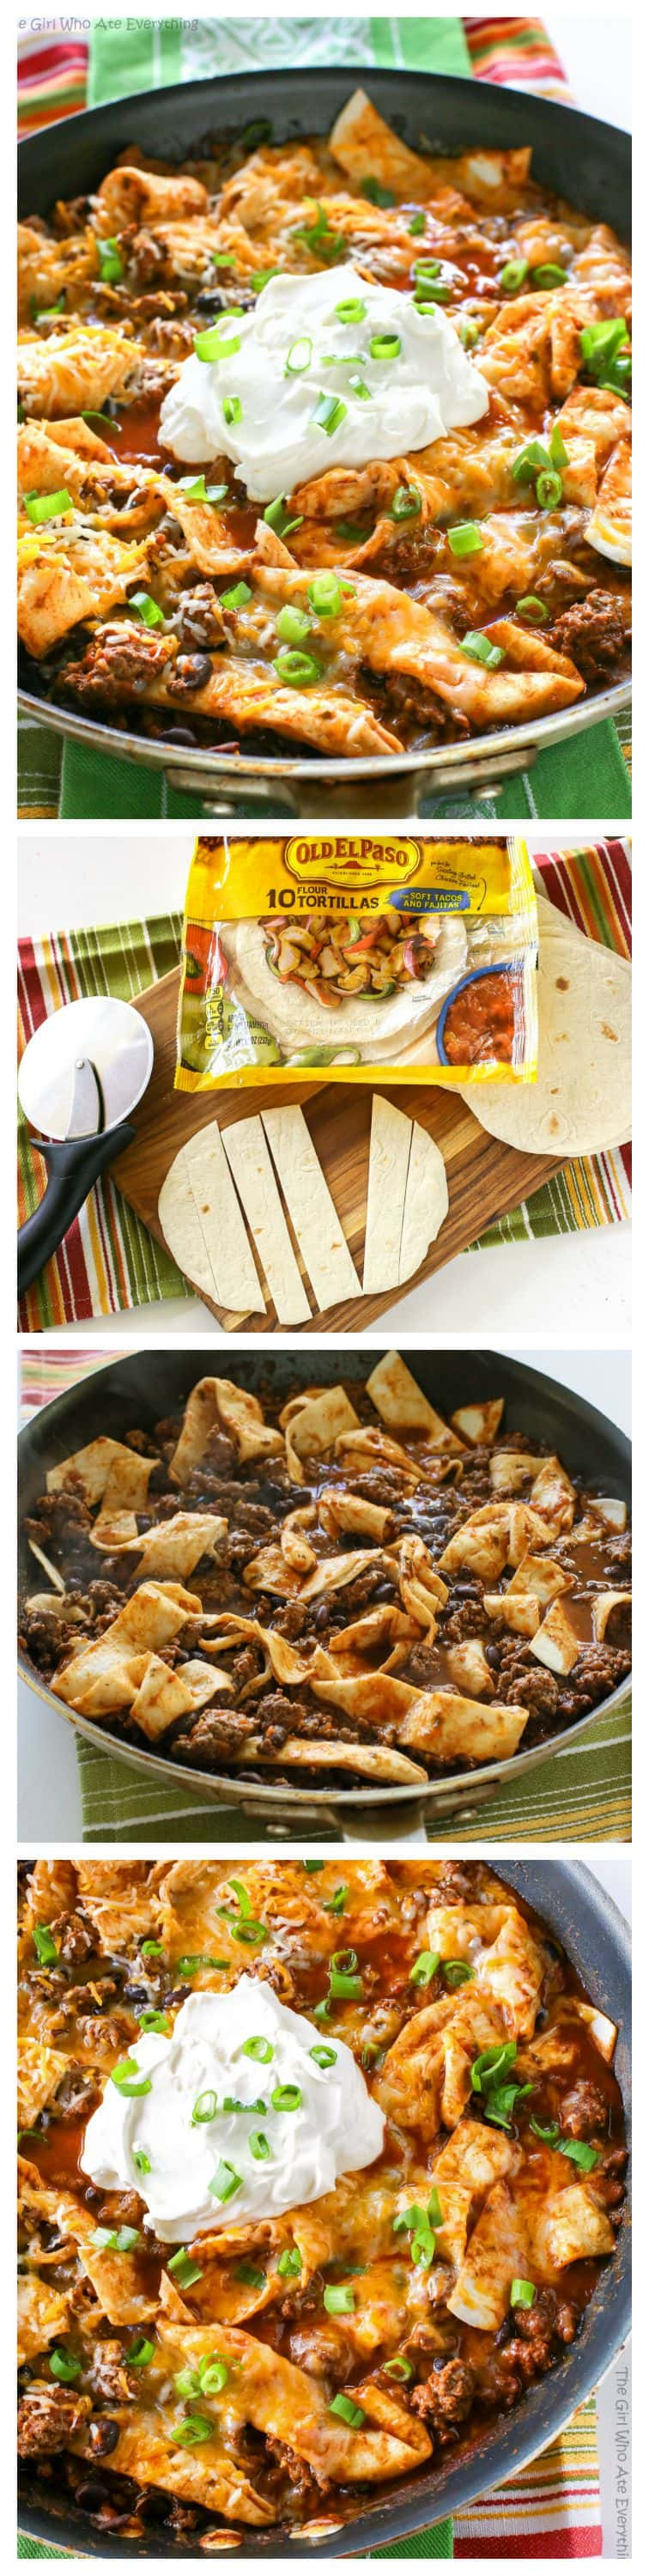 how to cook dried black beans for burritos